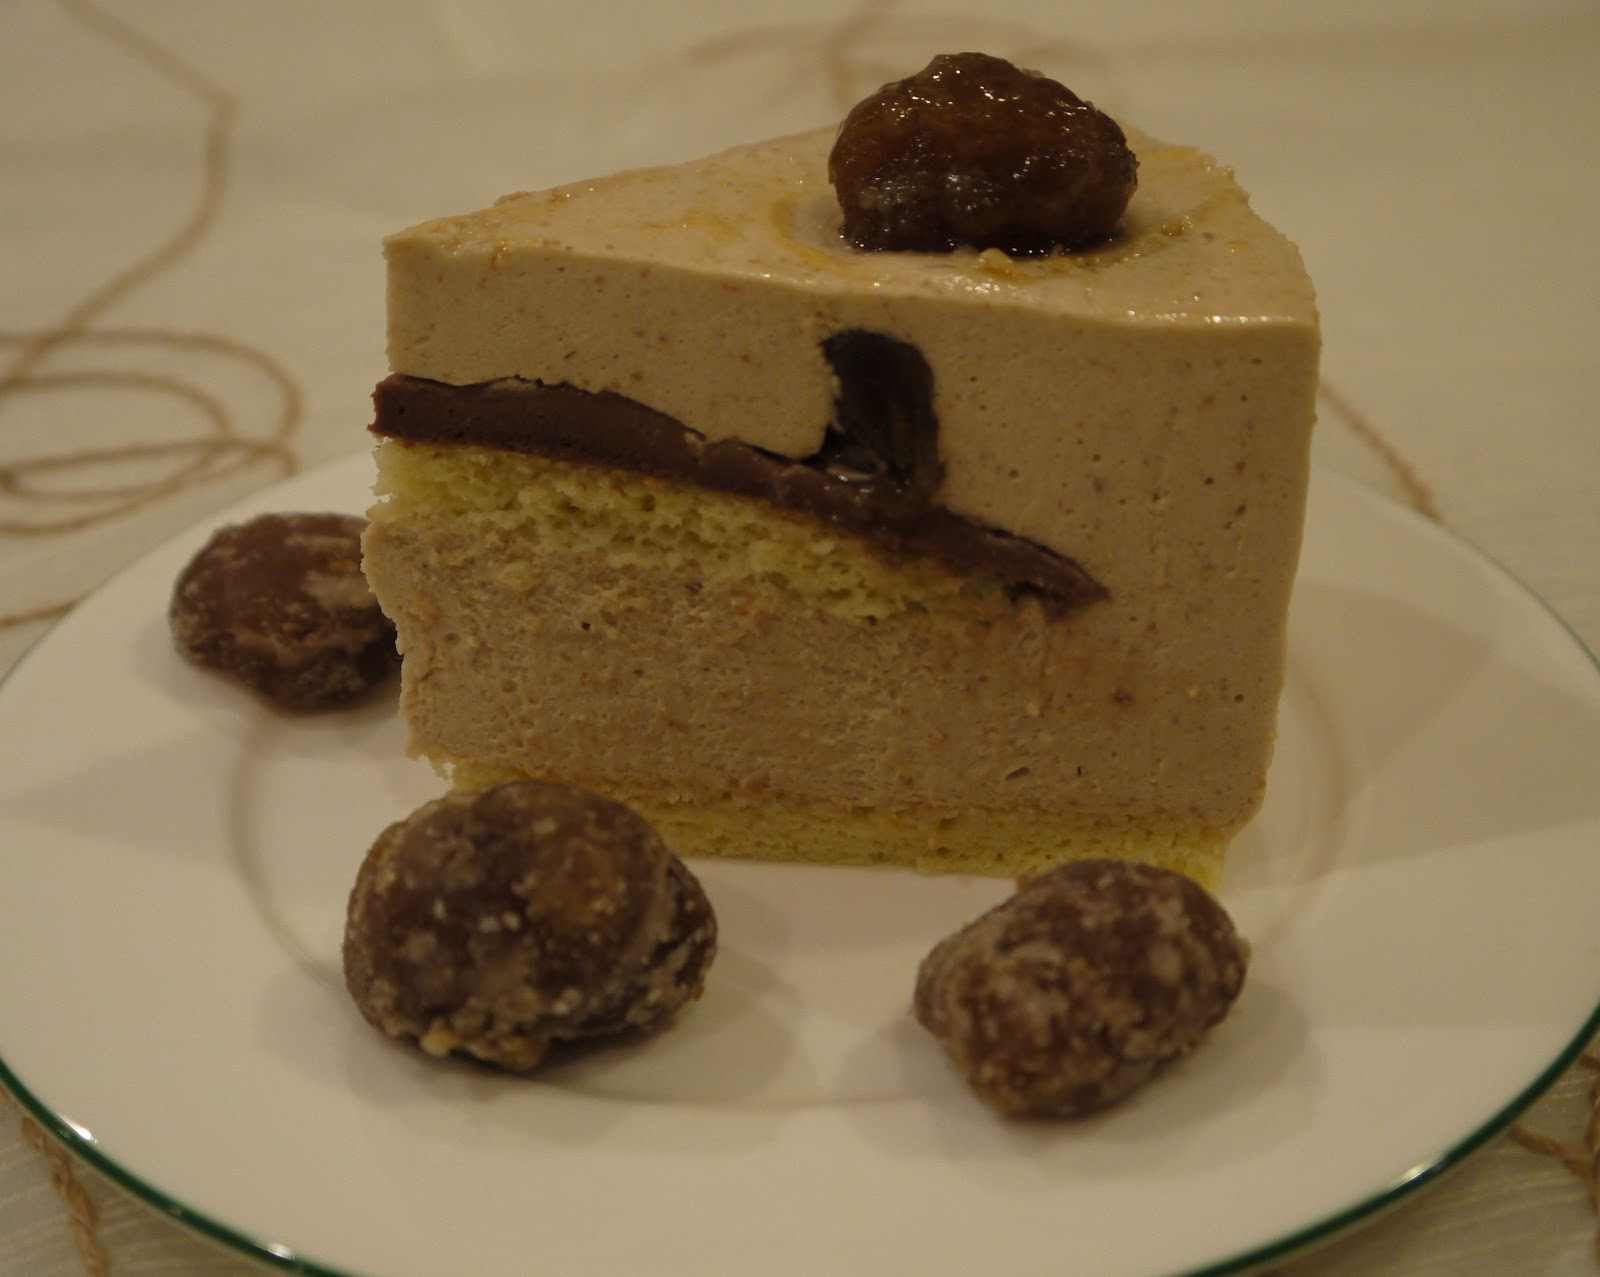 Chestnut mousse cake decorated with glazed chestnuts